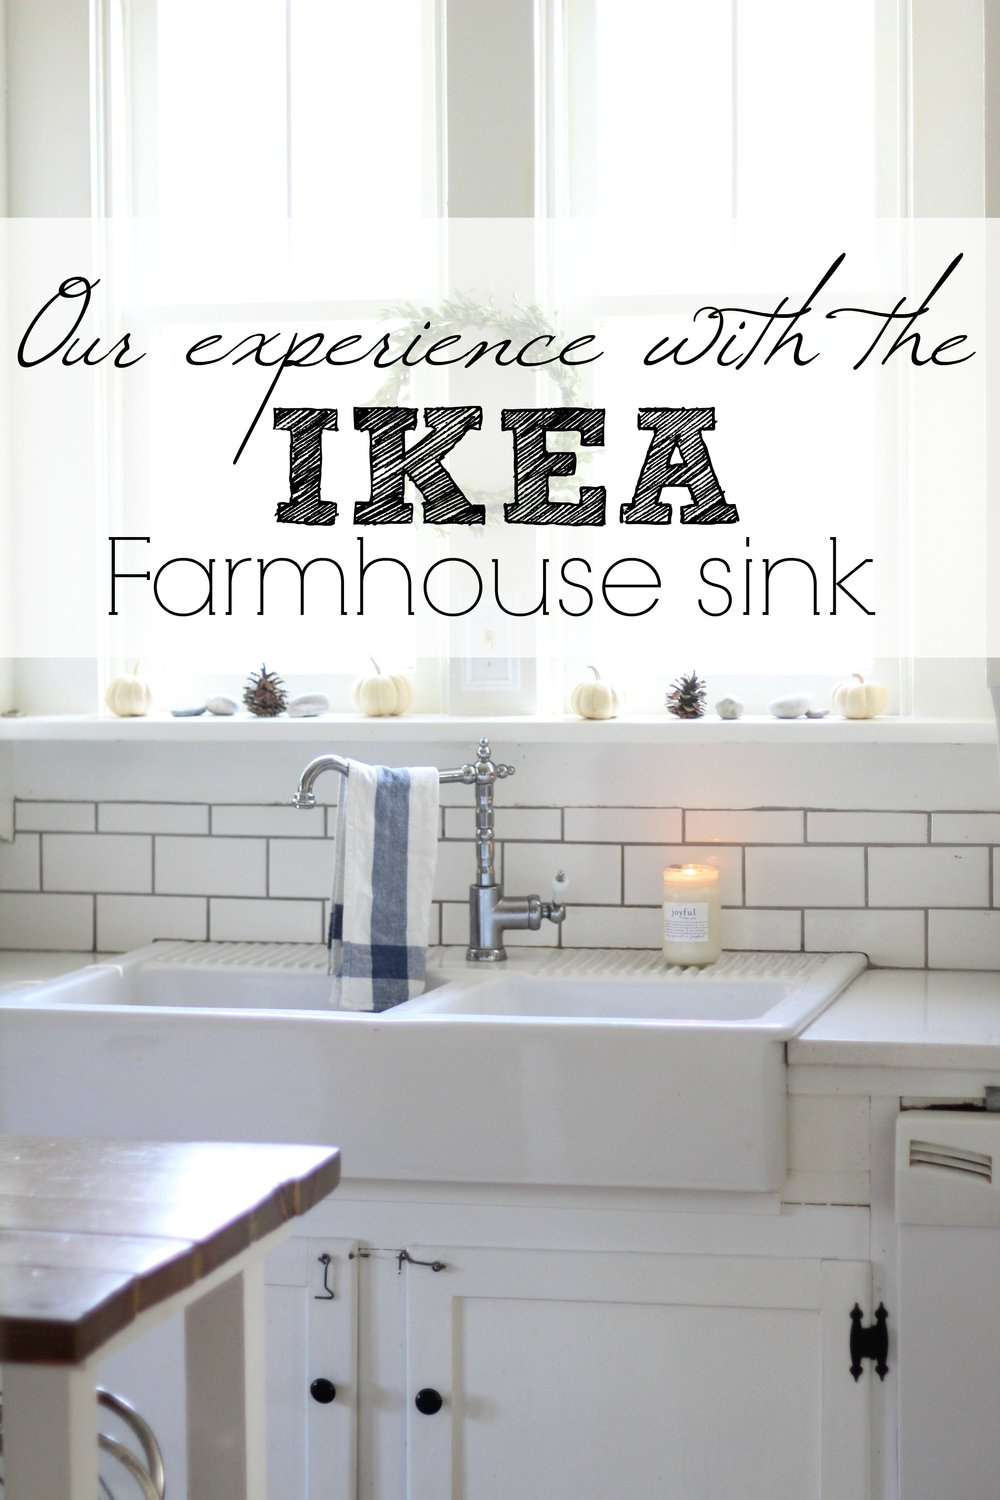 Incroyable Our Experience With The IKEA Domsjo Double Bowl Farmhouse Sink   Farmhouse  On Boone